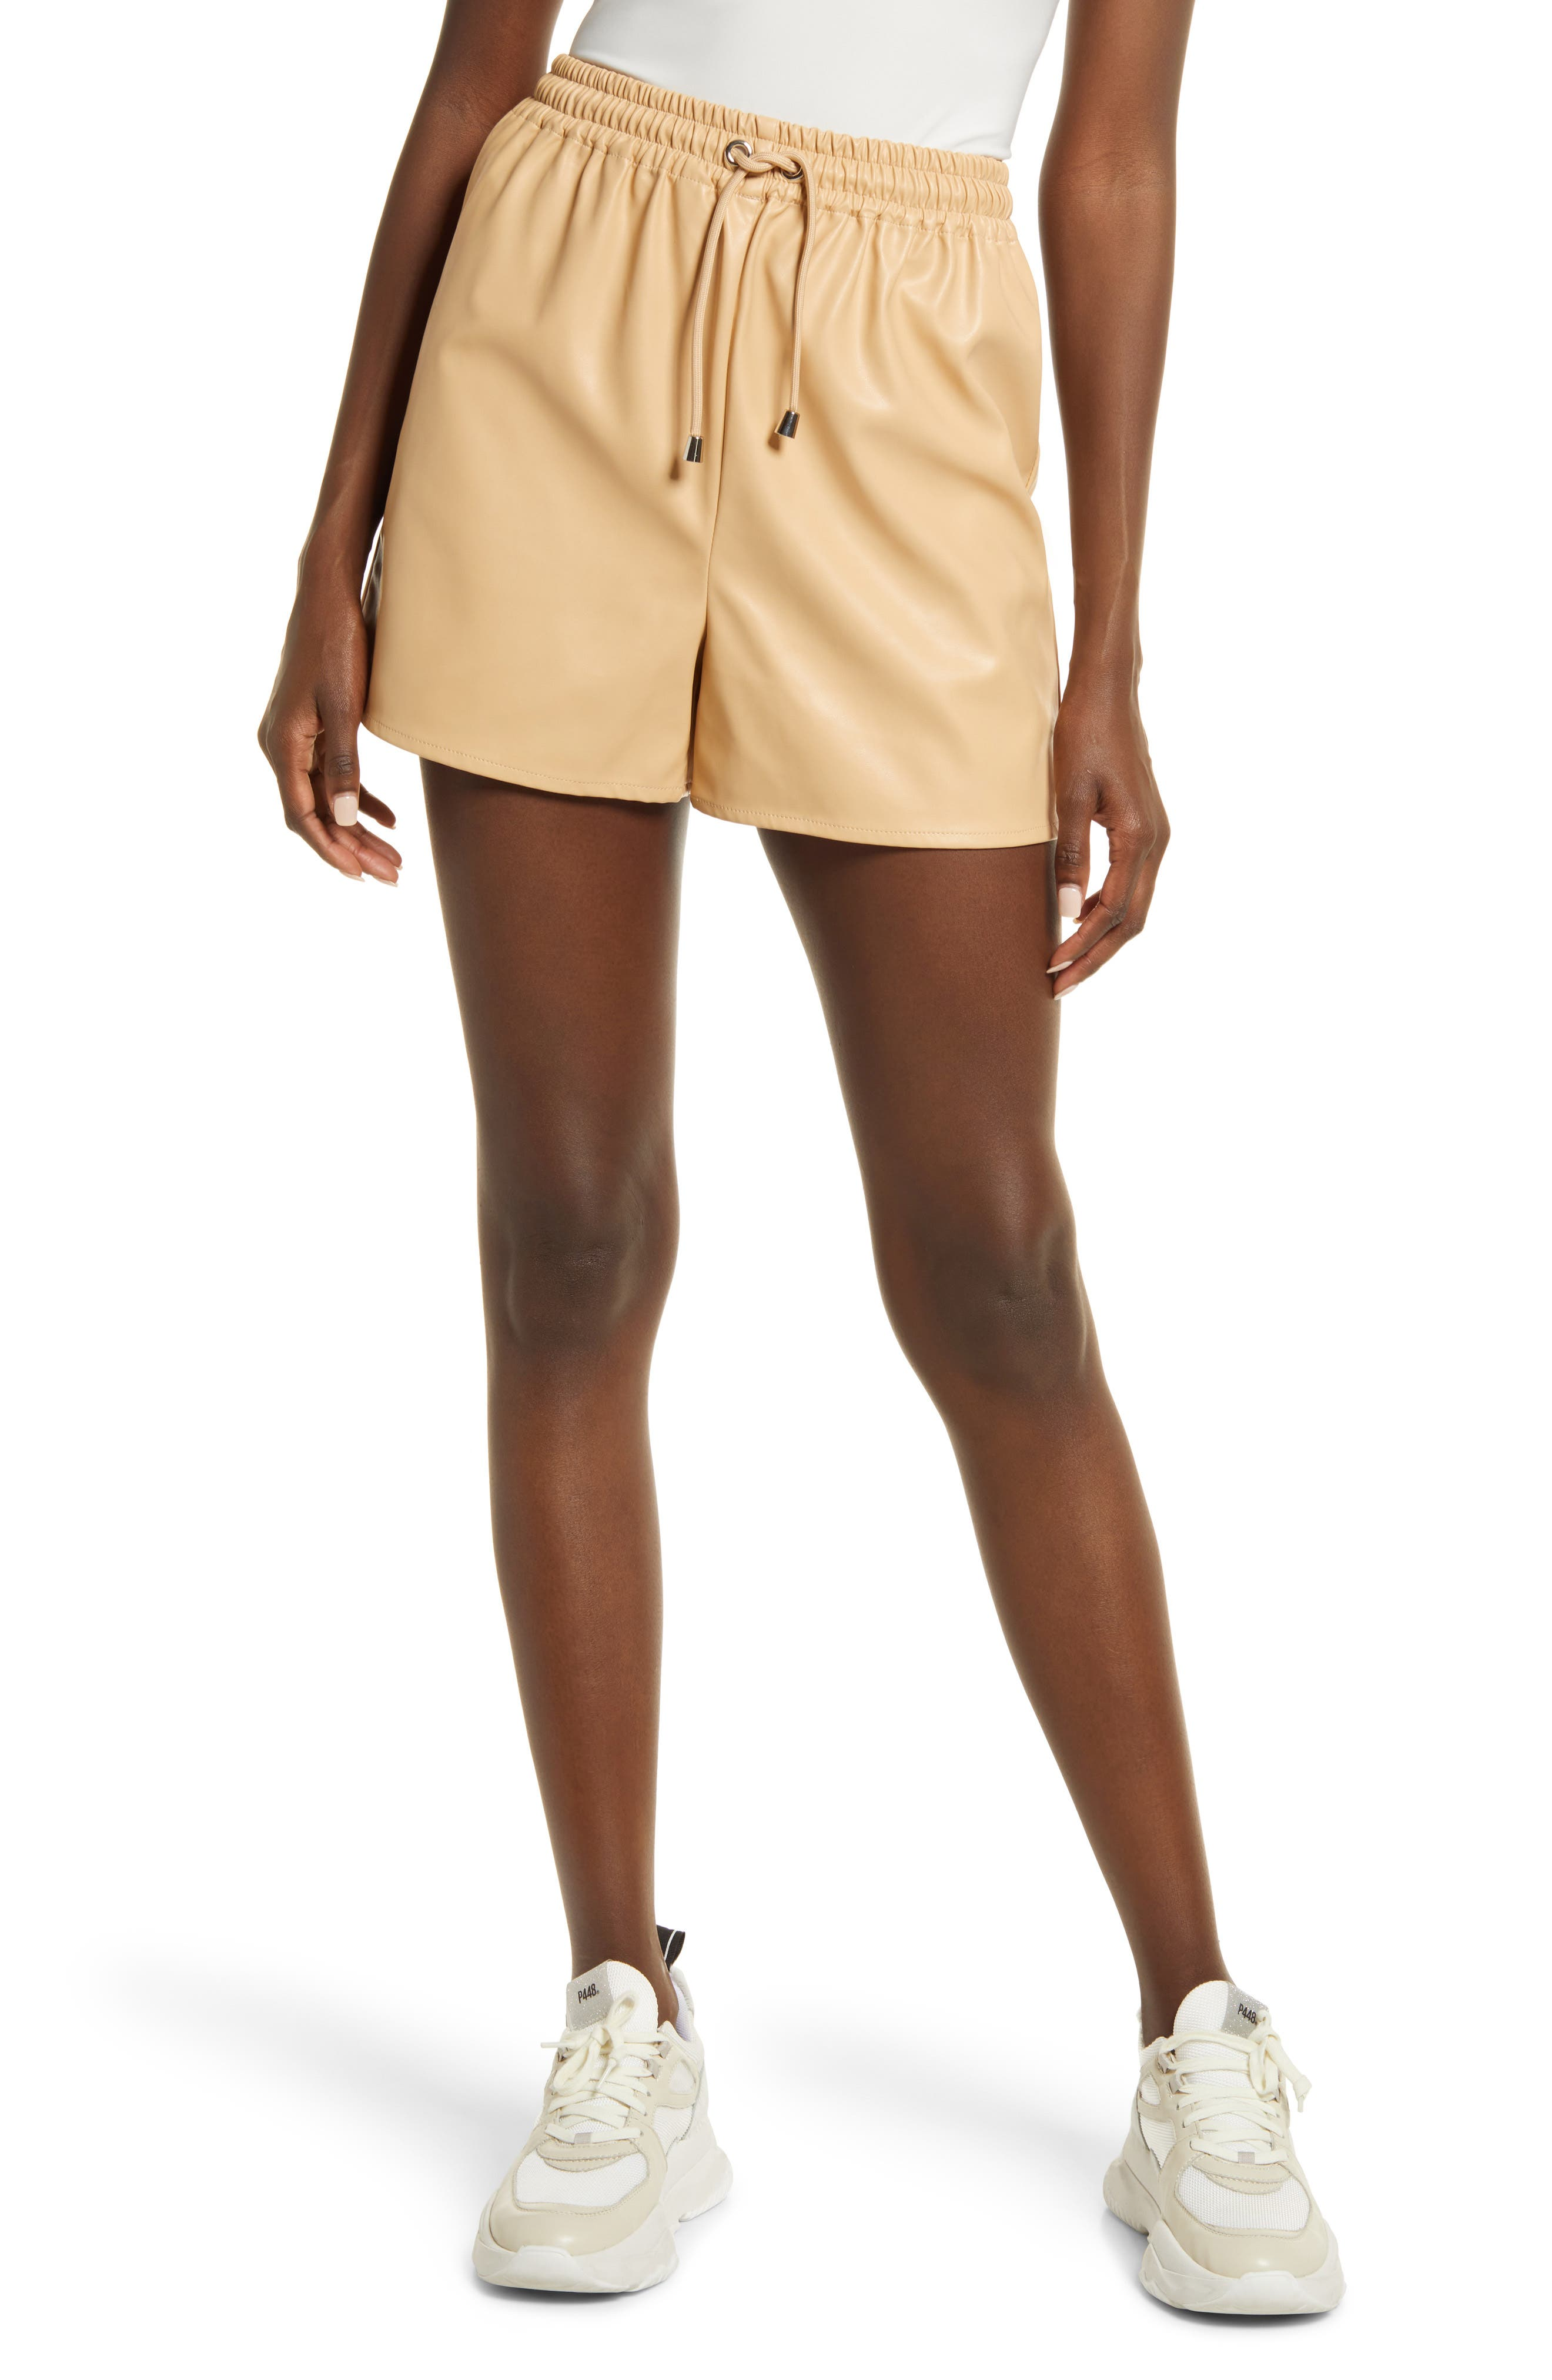 Women's Kendall + Kylie Faux Leather Shorts